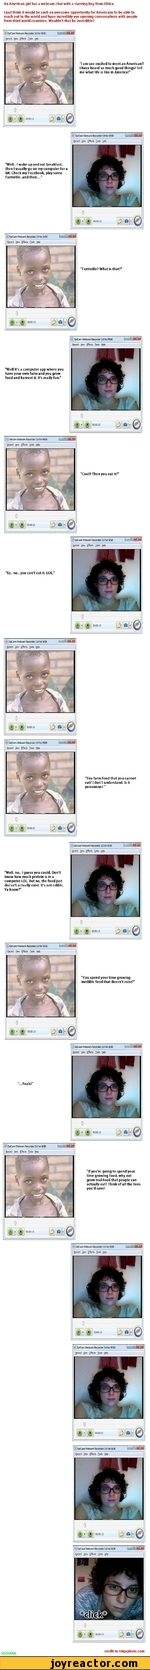 "An American girl has a webcam chat with a starving boy from Africa. I just think it would be such an awesome opportunity for Americans to be able to reach out to the world and have incredibly eye opening conversations with people from third world countries. Wouldn't that be incredible? ""lam"